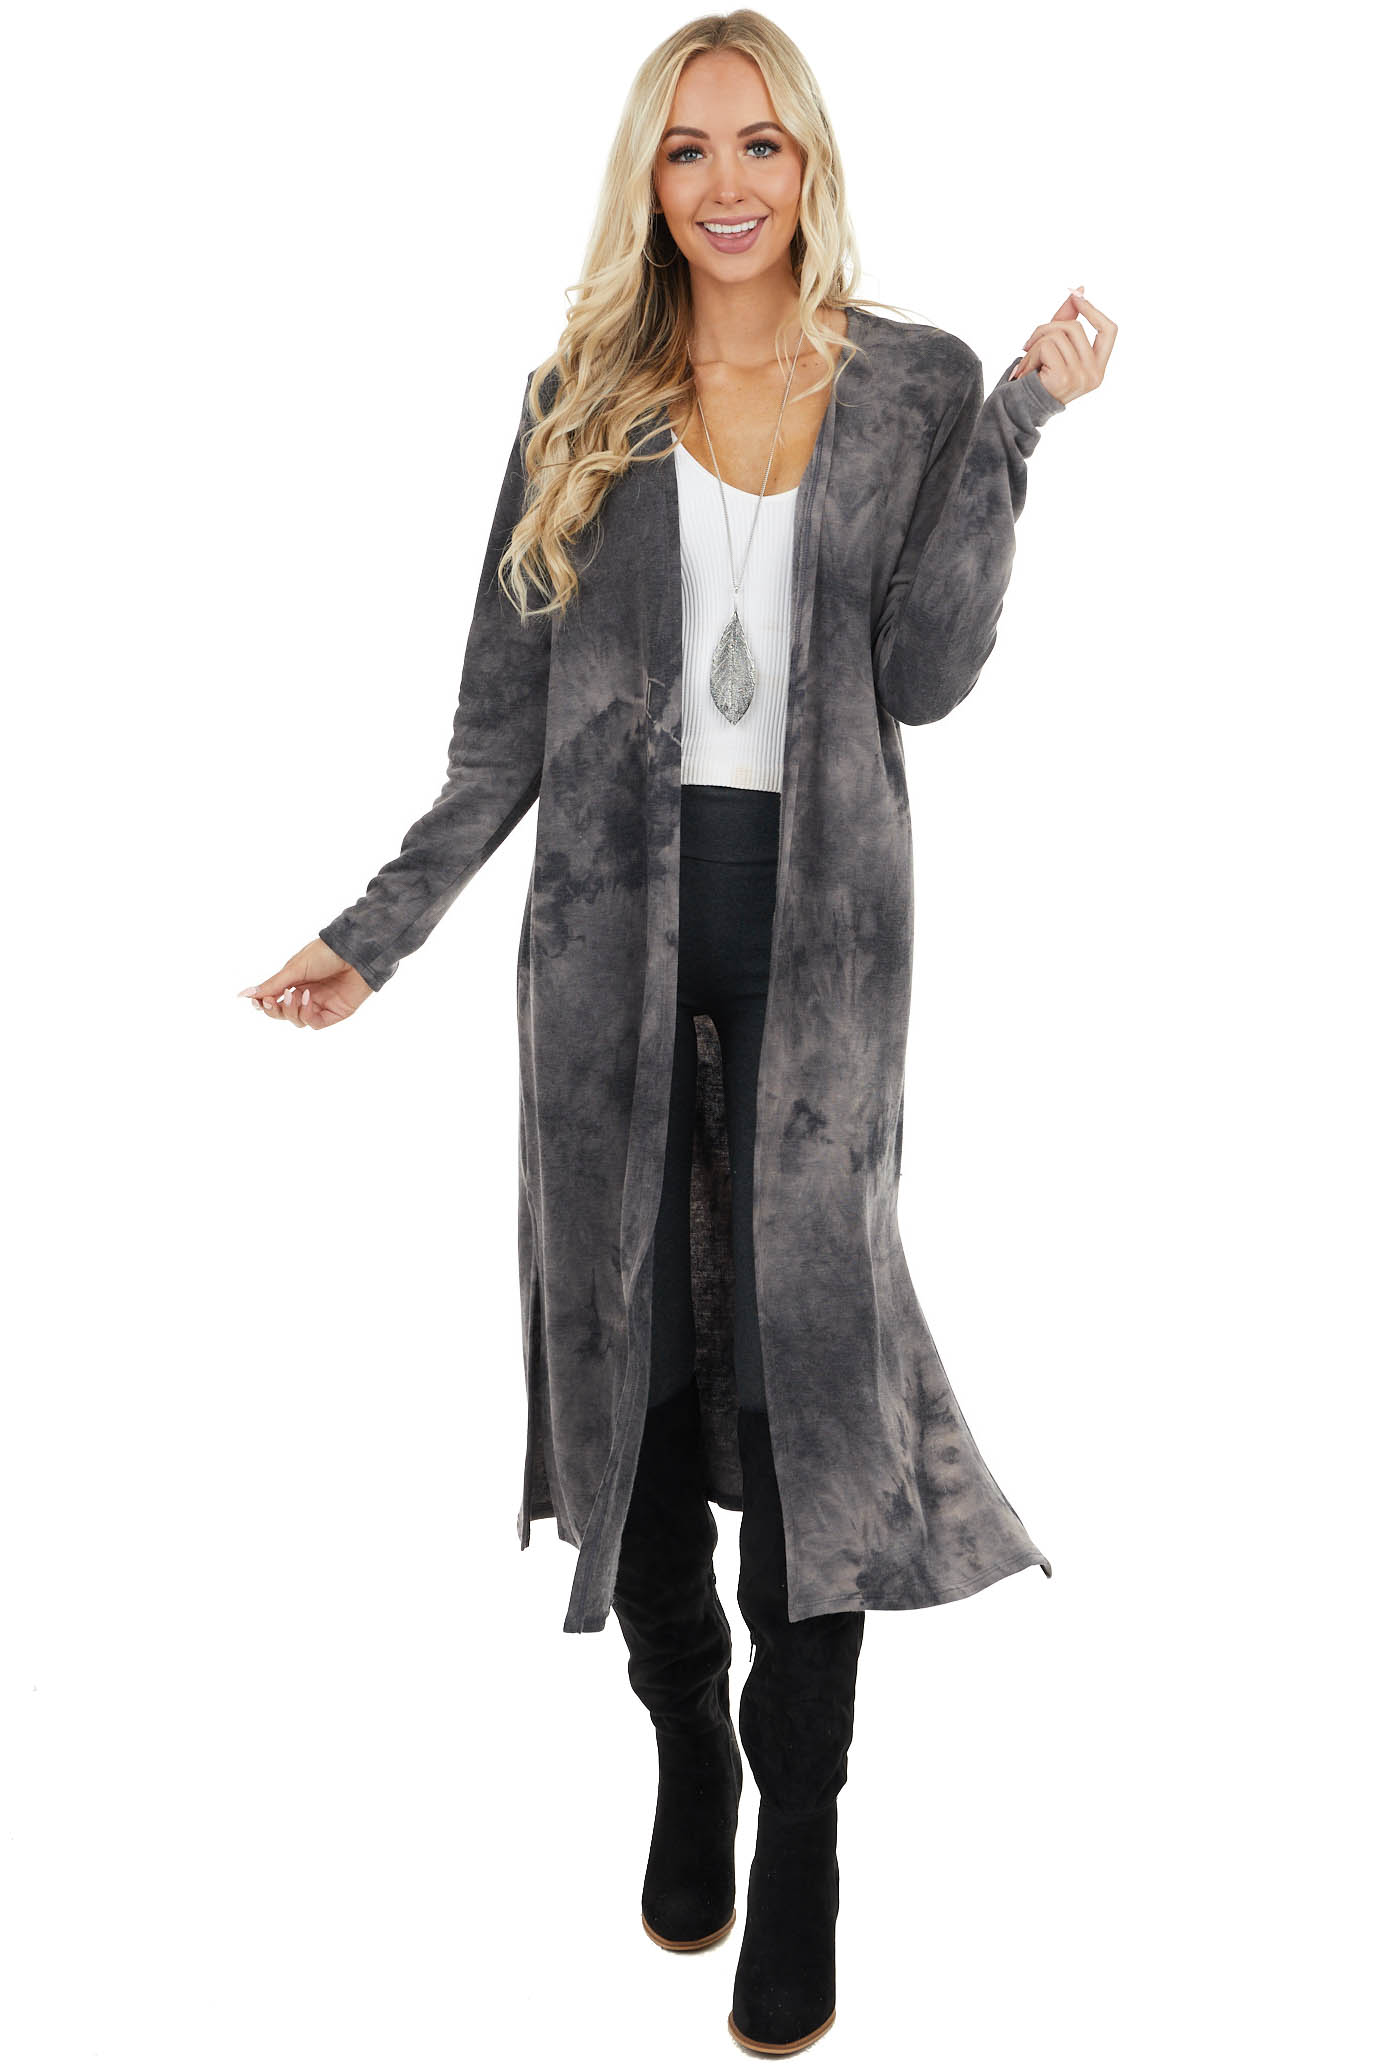 Charcoal Tie Dye Long Sleeve Duster Cardigan with Side Slits